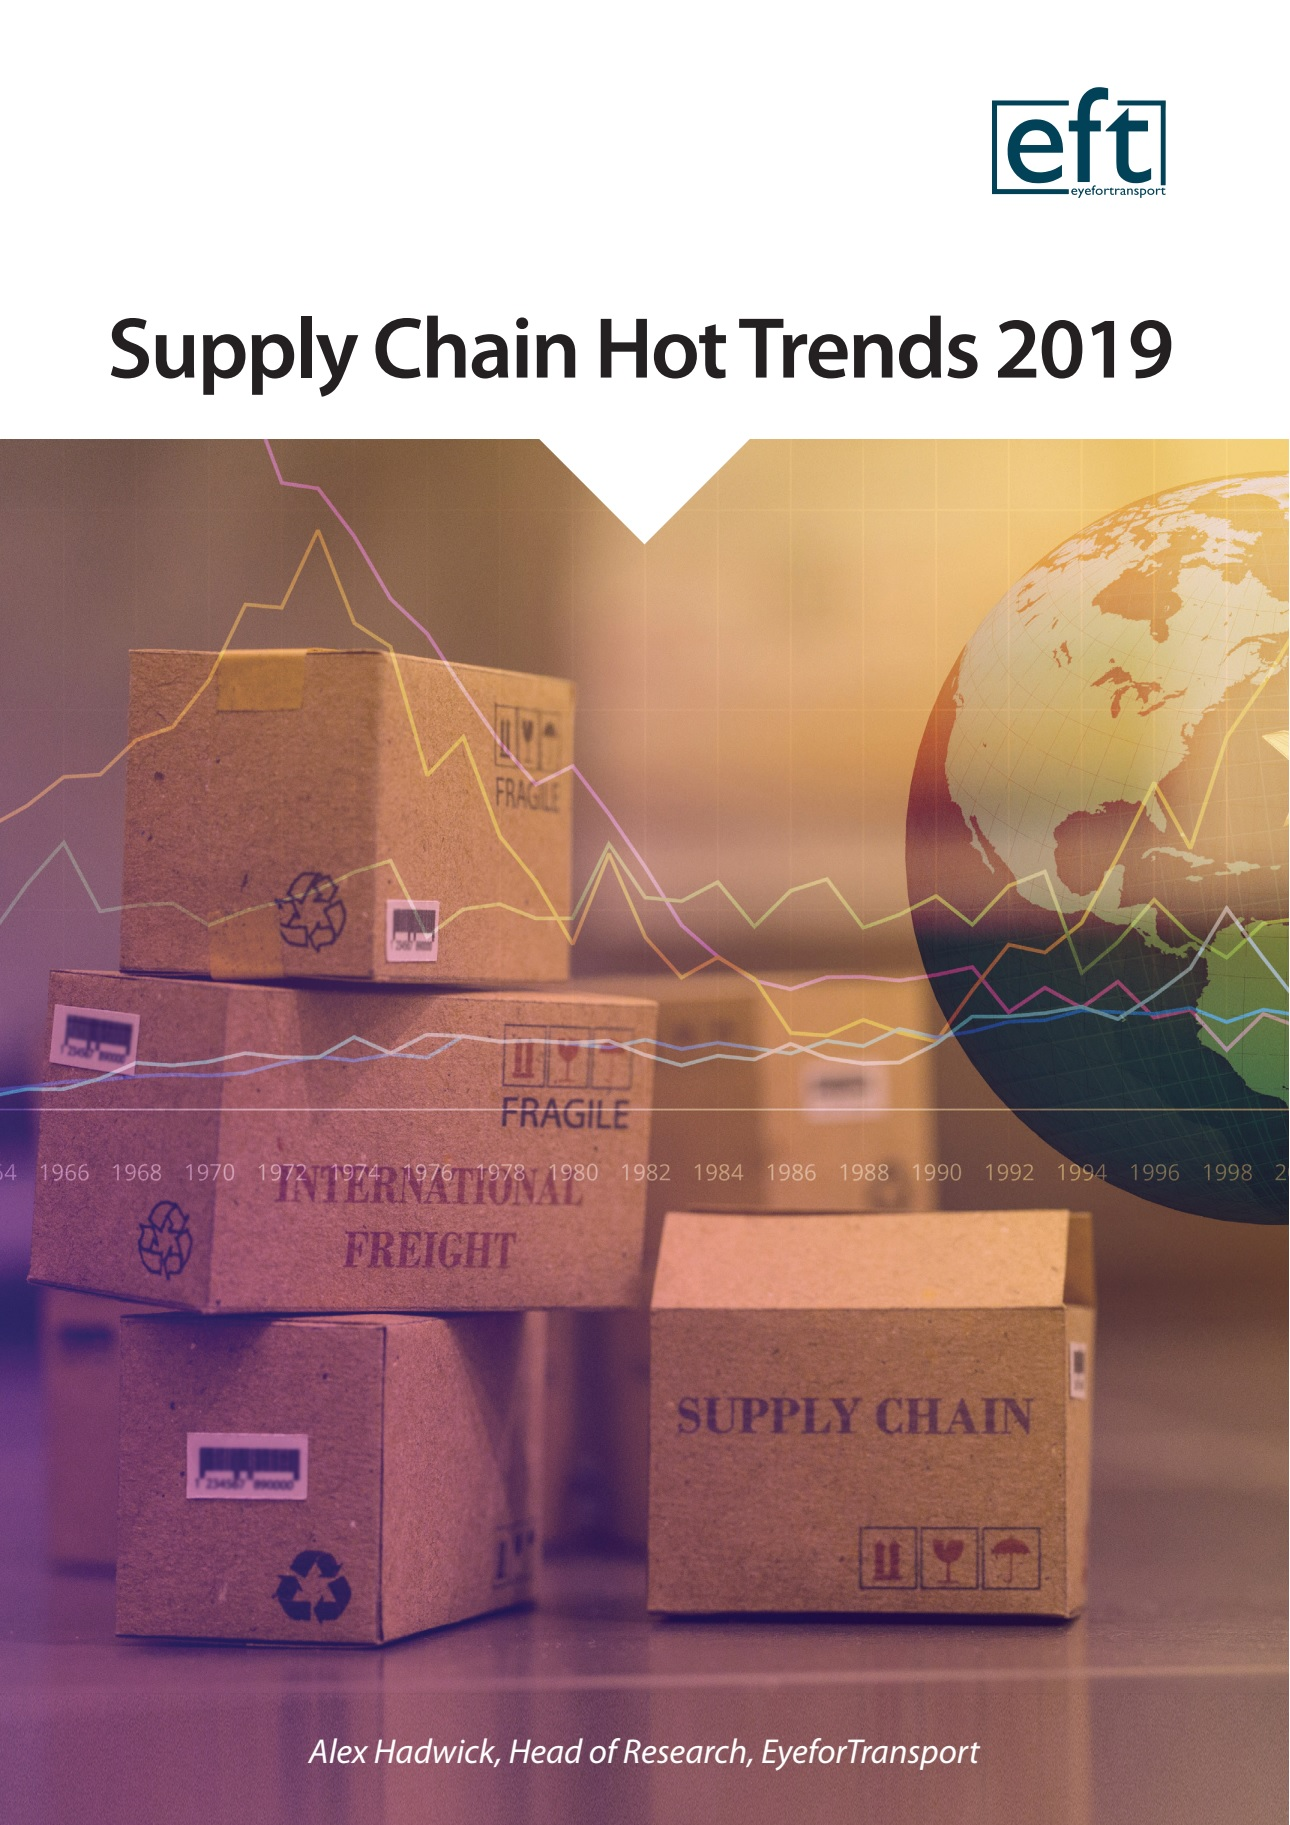 Suuply Chain Hot Trends 2019 report